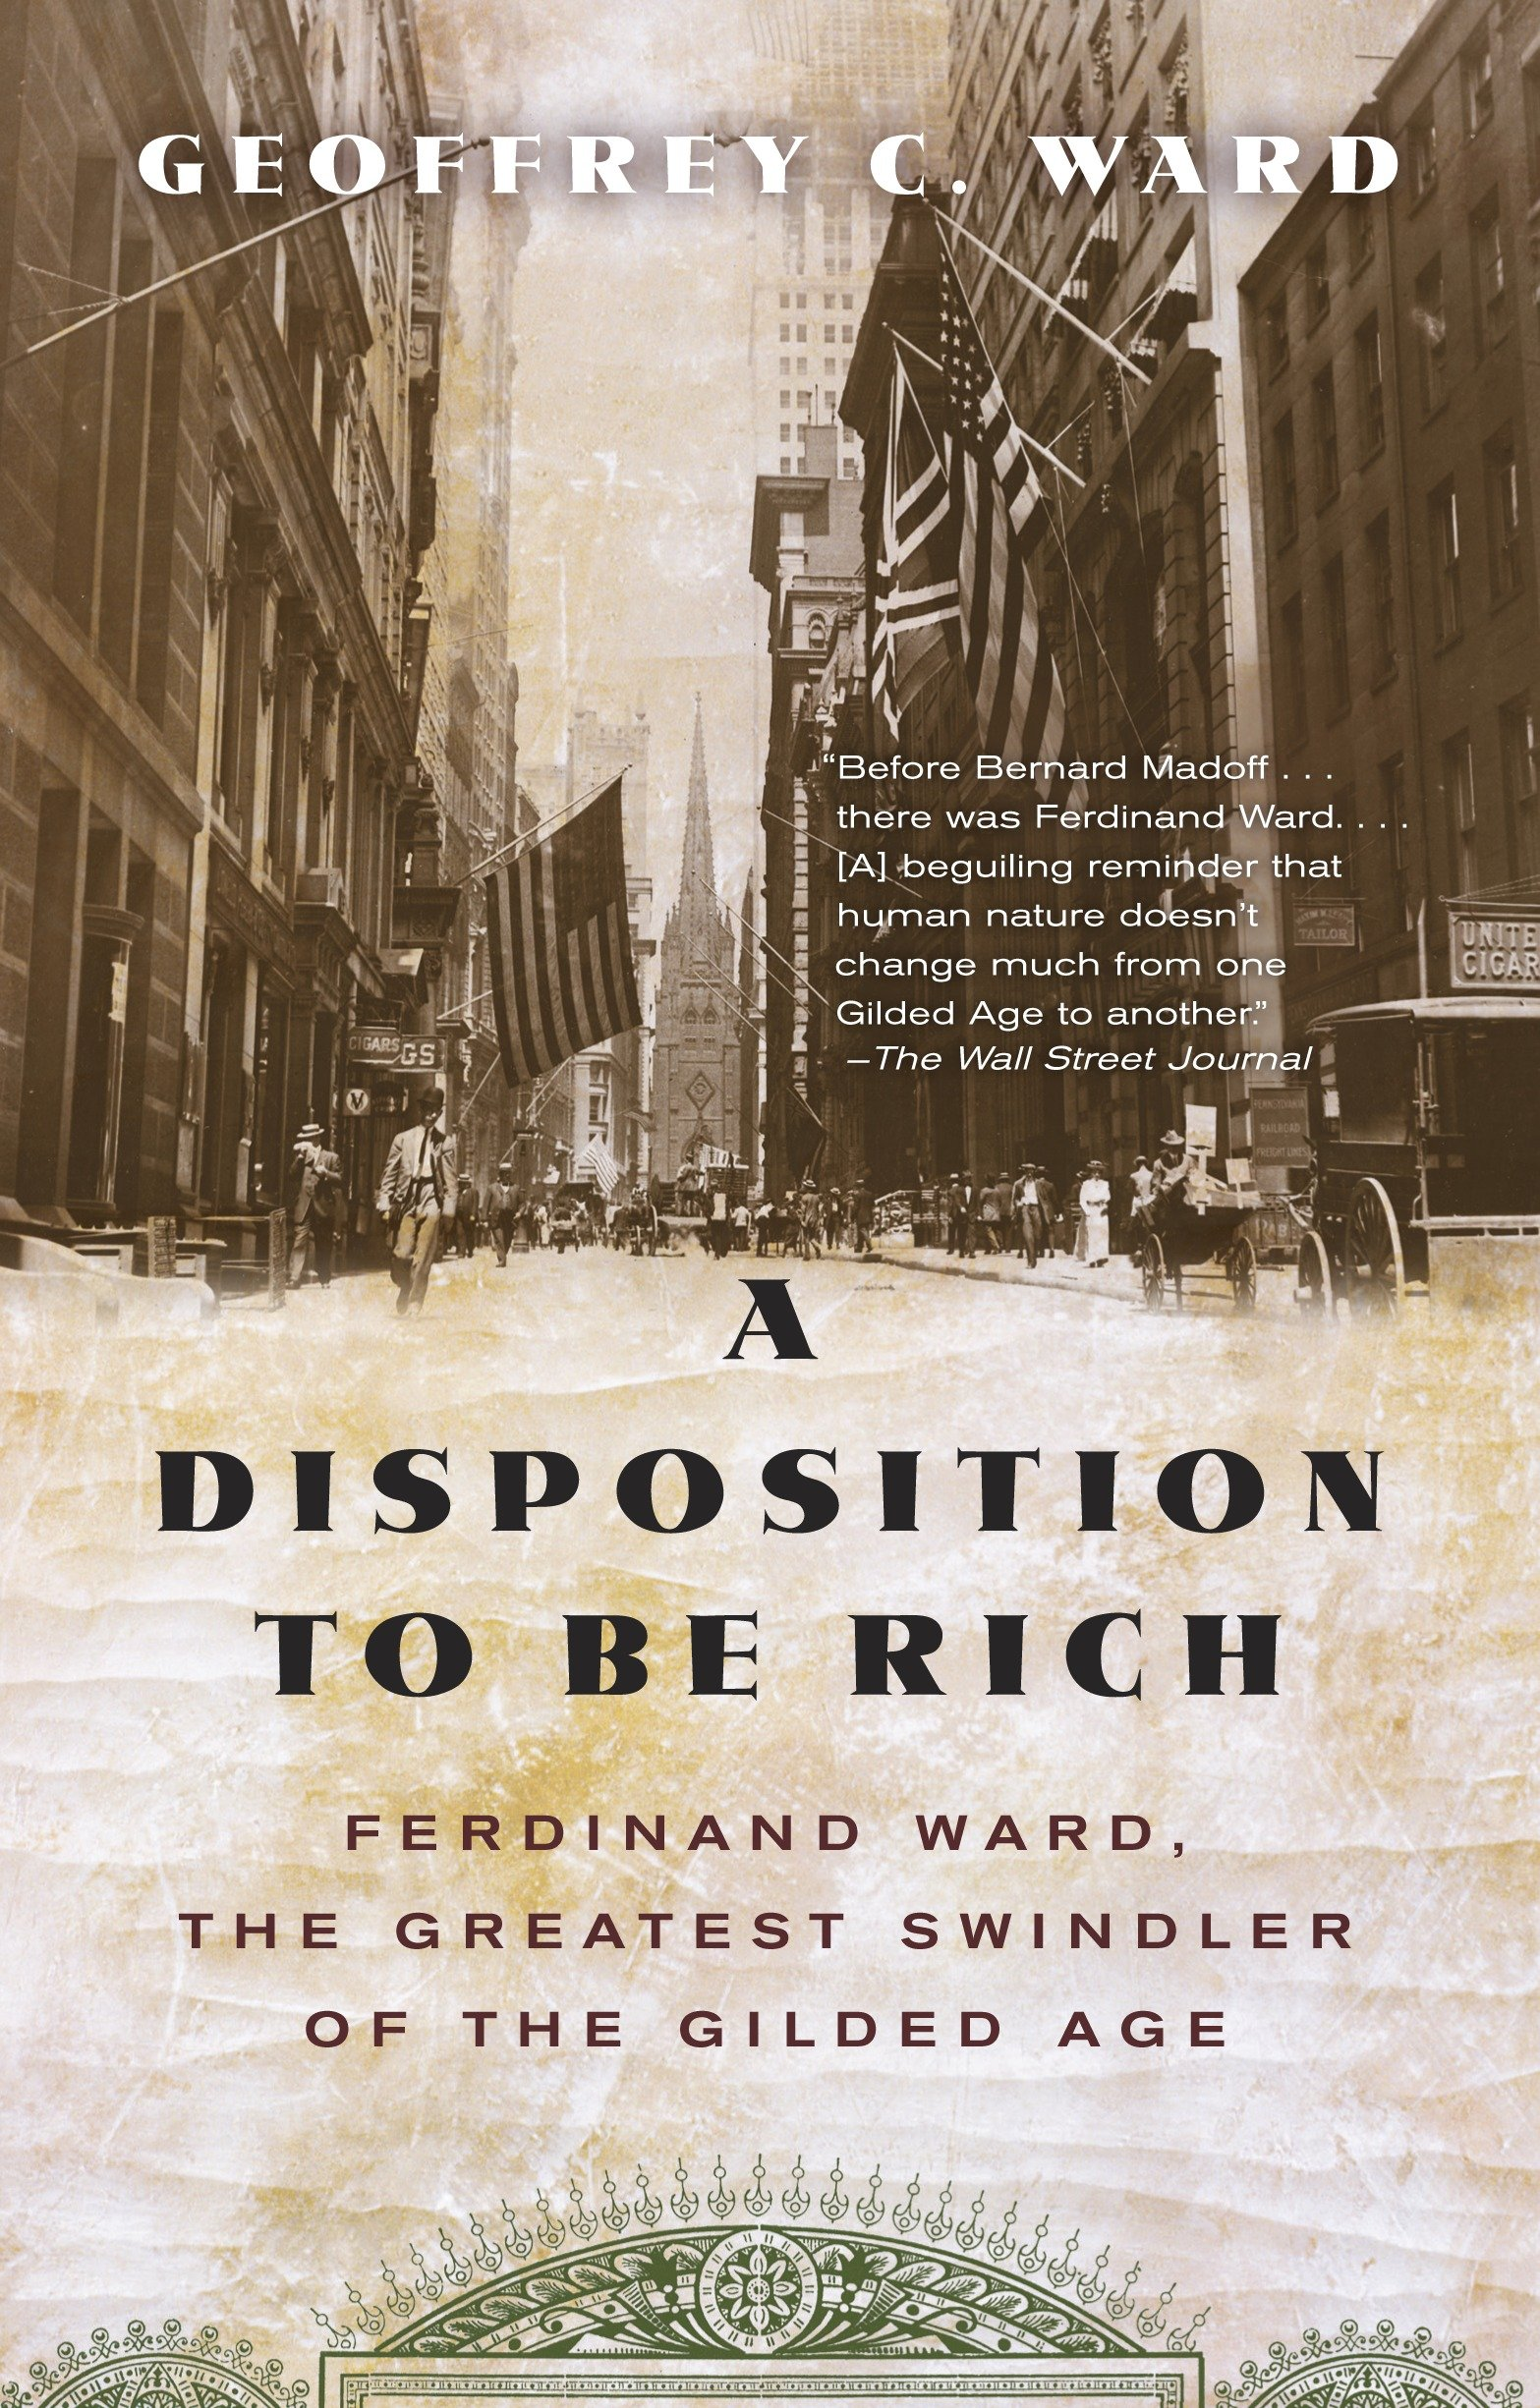 A disposition to be rich how a small-town pastor's son ruined an American president, brought on a Wall Street crash, and made himself the best-hated man in the United States